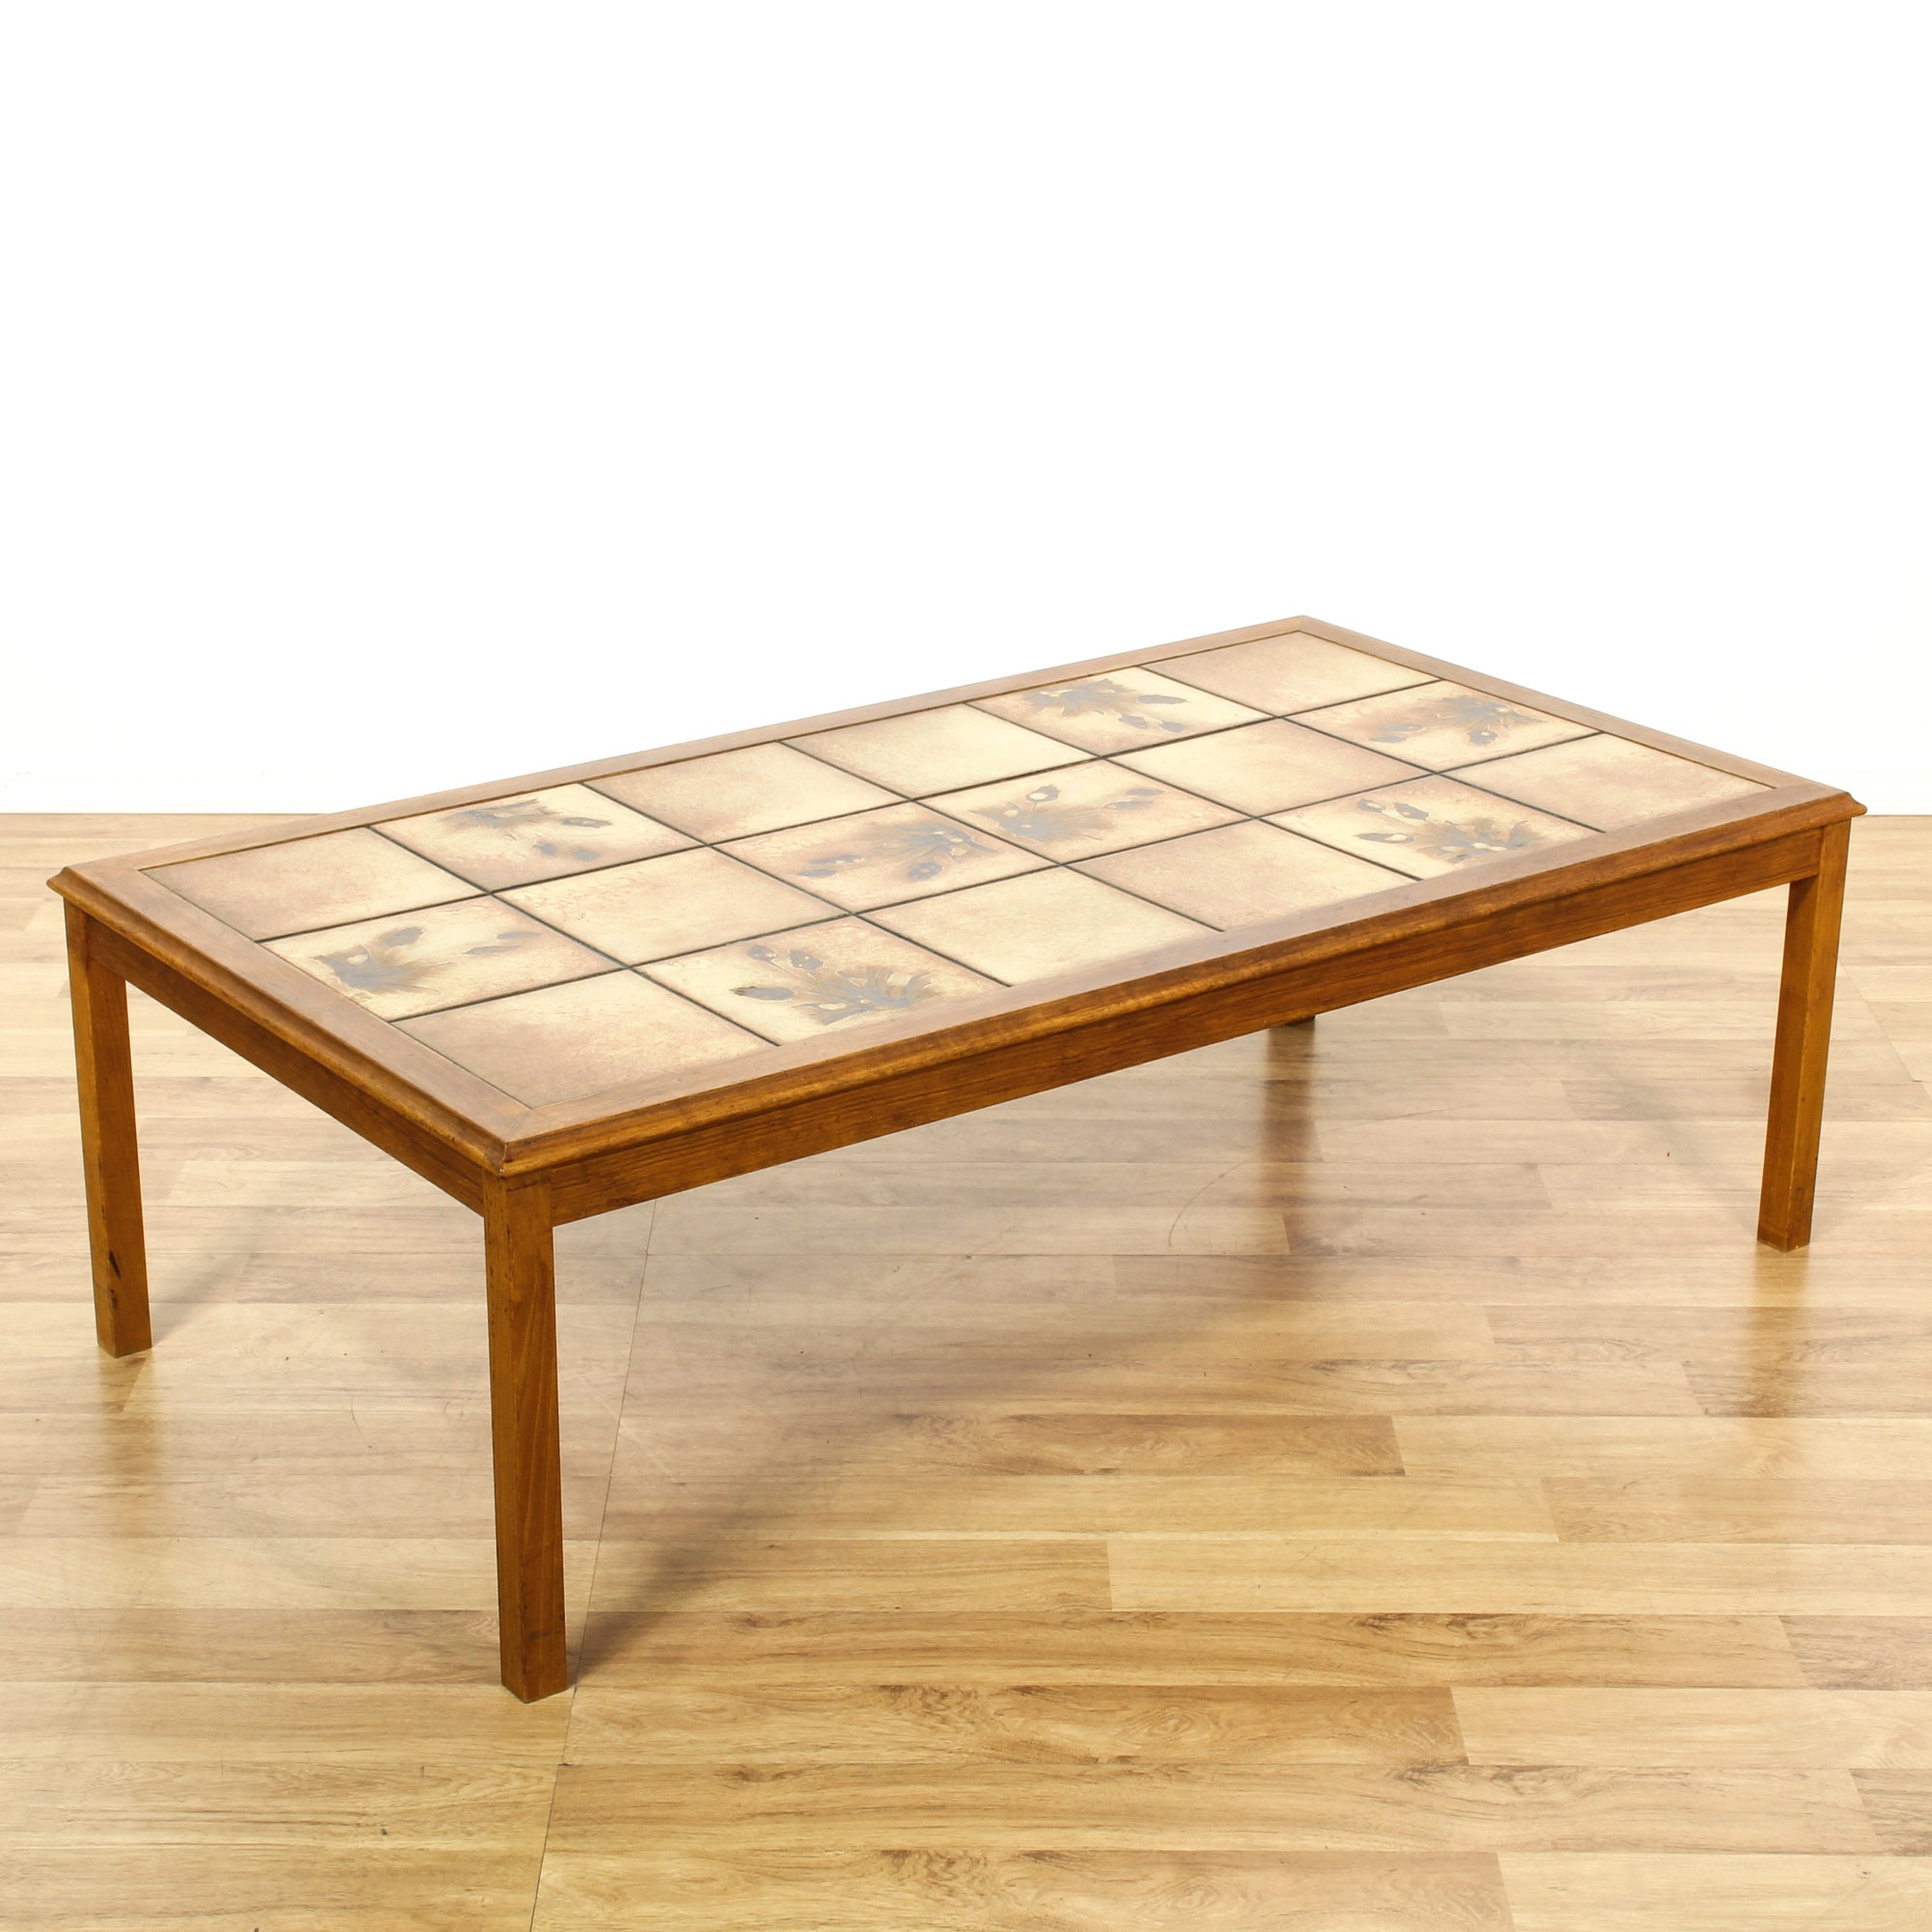 Tile Coffee Table Set: Mid Century Tile Top Coffee Table